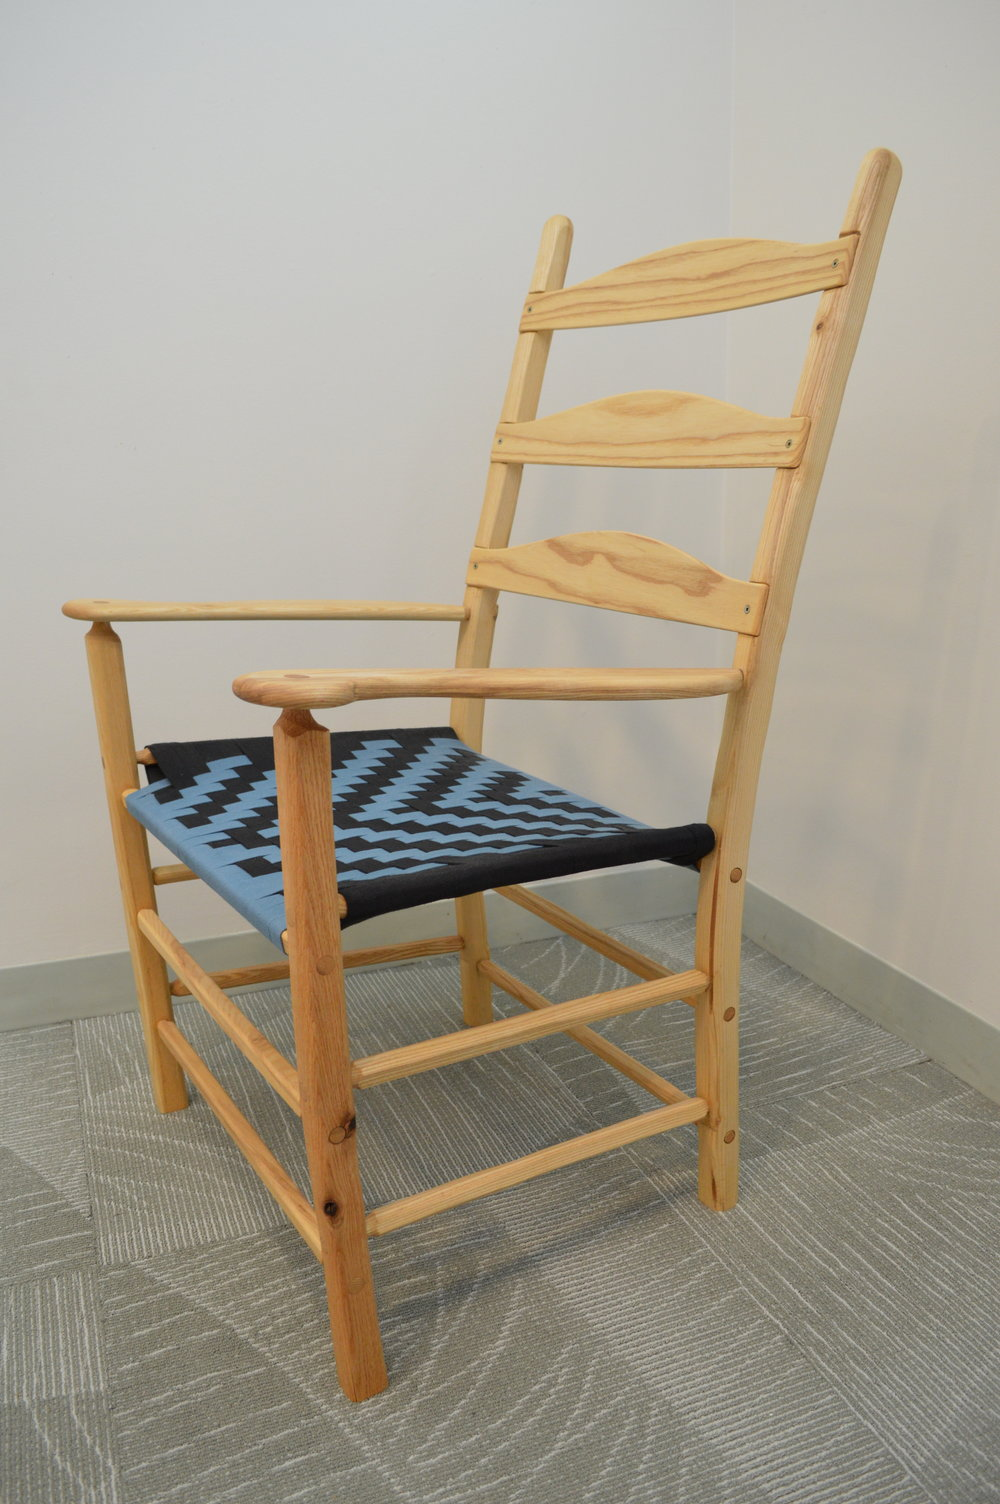 Elder's Chair (woodworking - 19'' x 23'' x 44'') (Part Two) - James McCarey